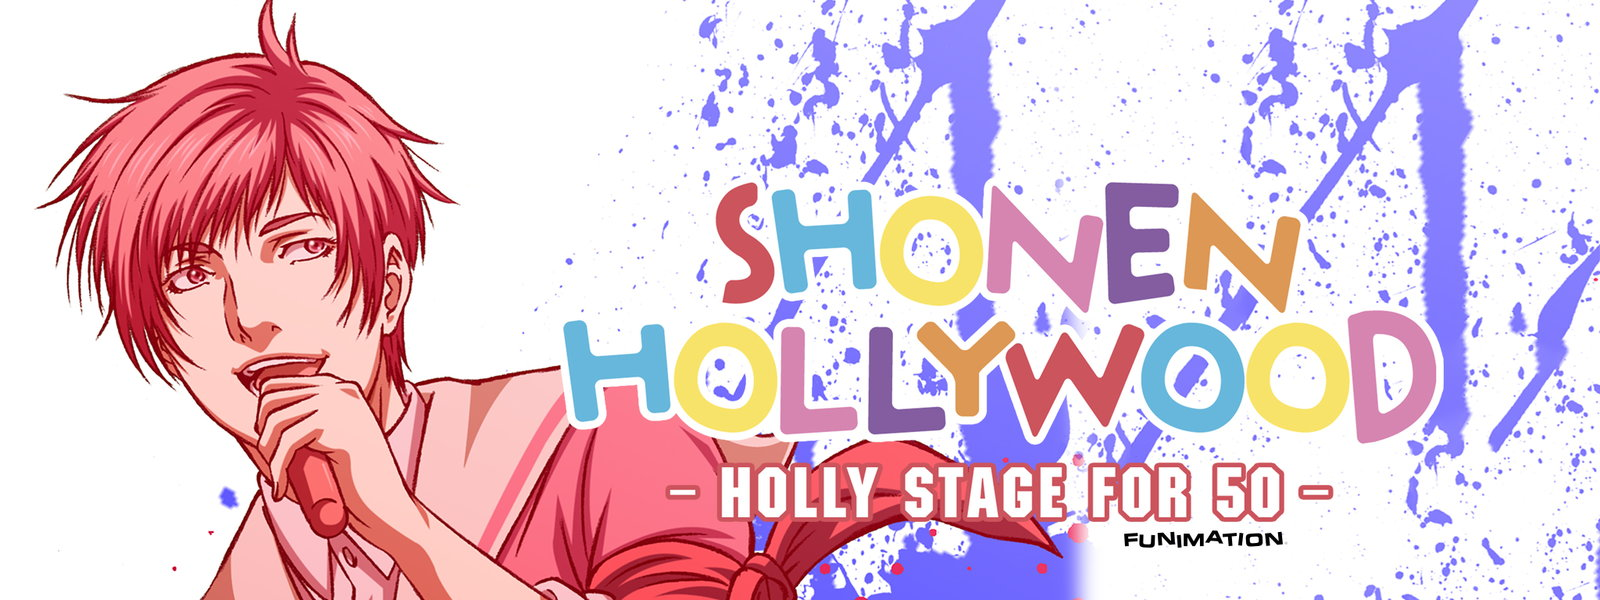 SHONEN HOLLYWOOD (HOLLY STAGE FOR 49 DESCRIPTION) ตอนที่ 1-9 [ซับไทย]